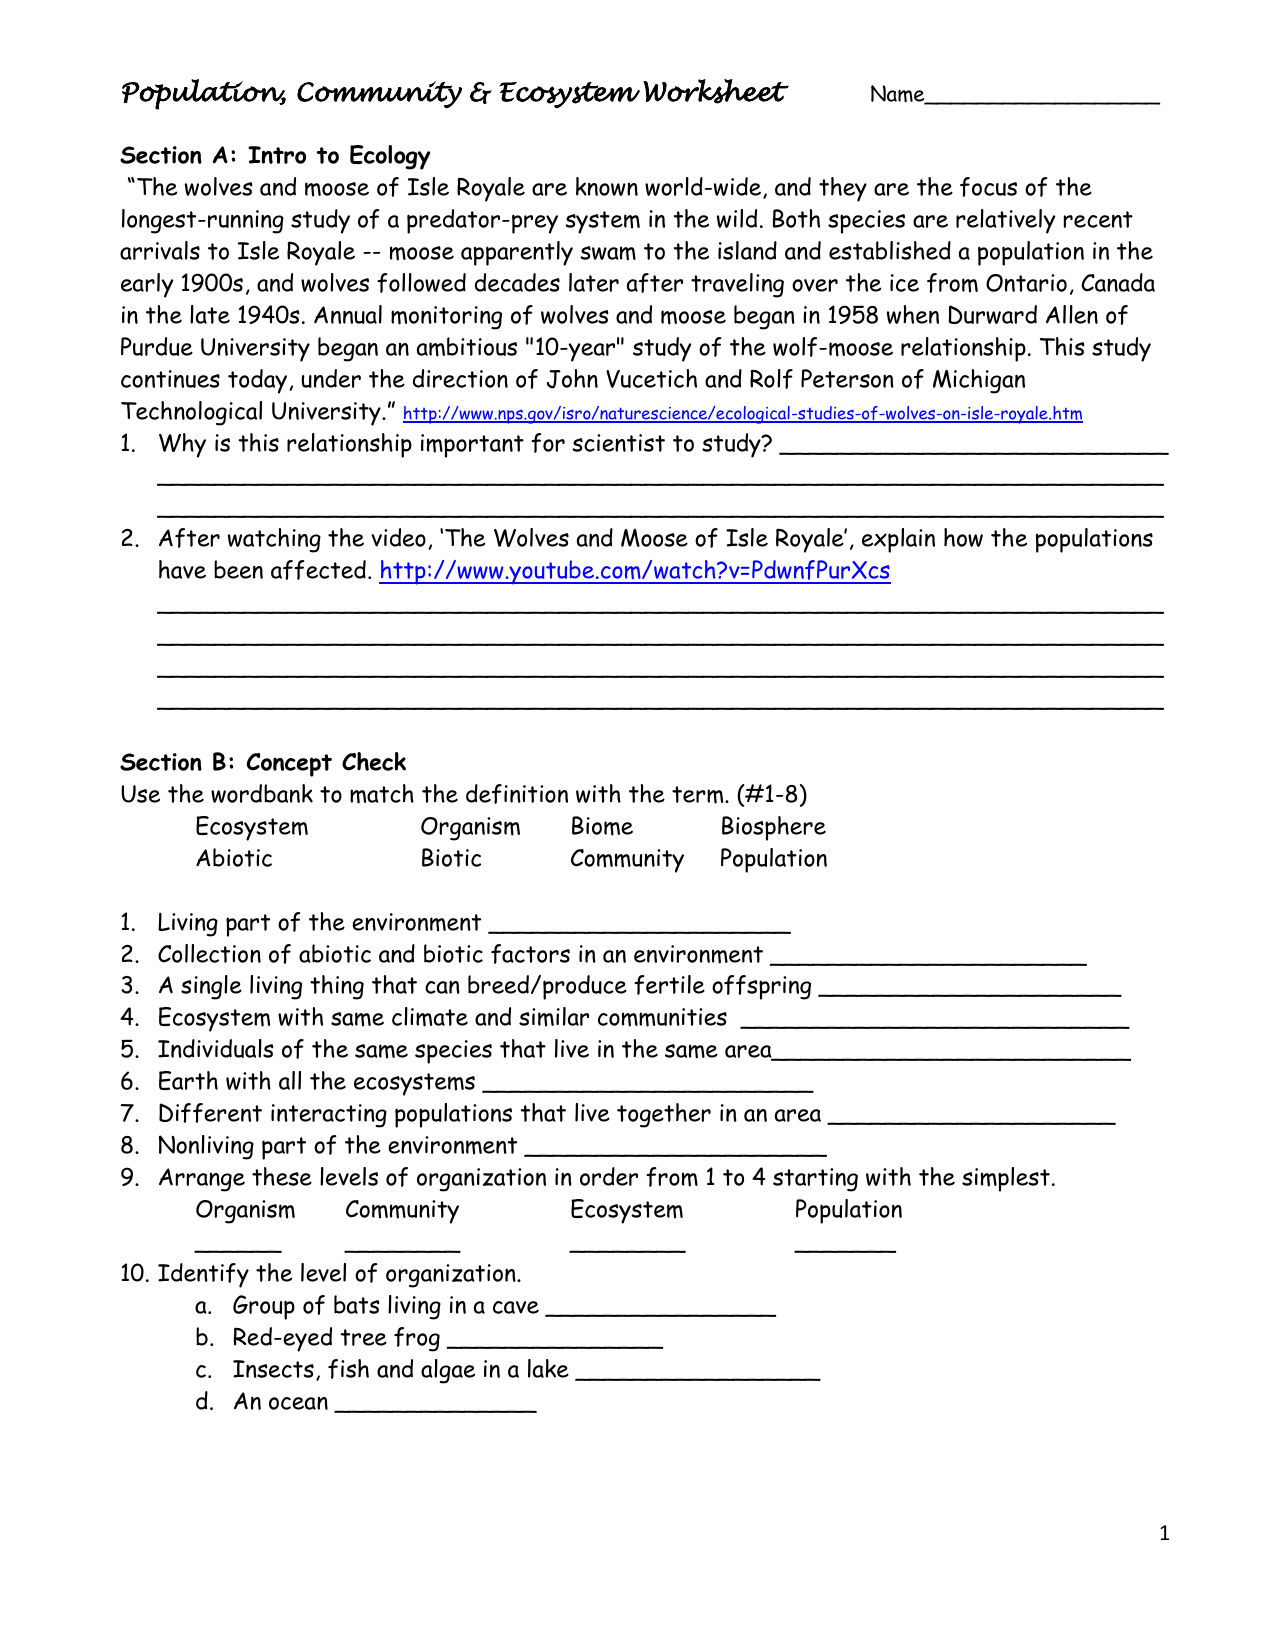 Worksheets Ecosystems Worksheets population community ecosystem worksheet life science worksheet